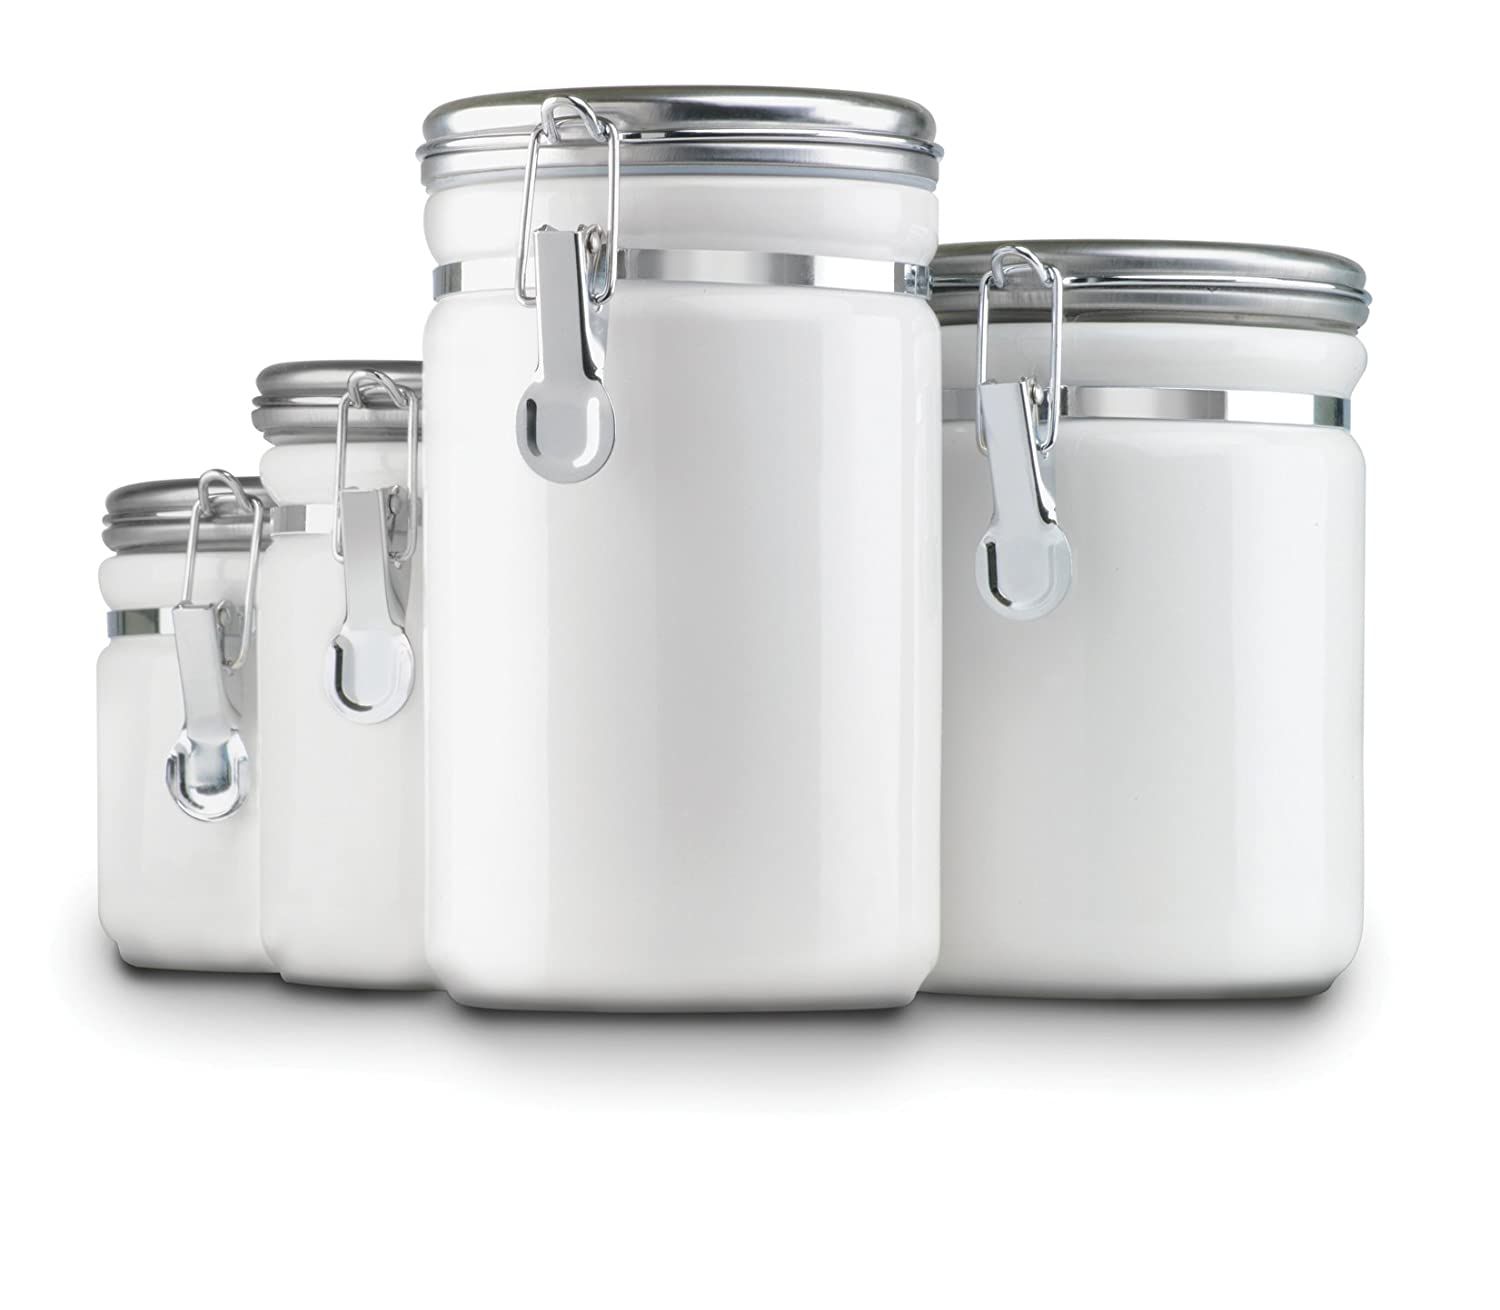 Amazon.com: Anchor Hocking 4 Piece Ceramic Canister Set With Clamp Top Lid,  White: Kitchen Storage And Organization Product Sets: Kitchen U0026 Dining